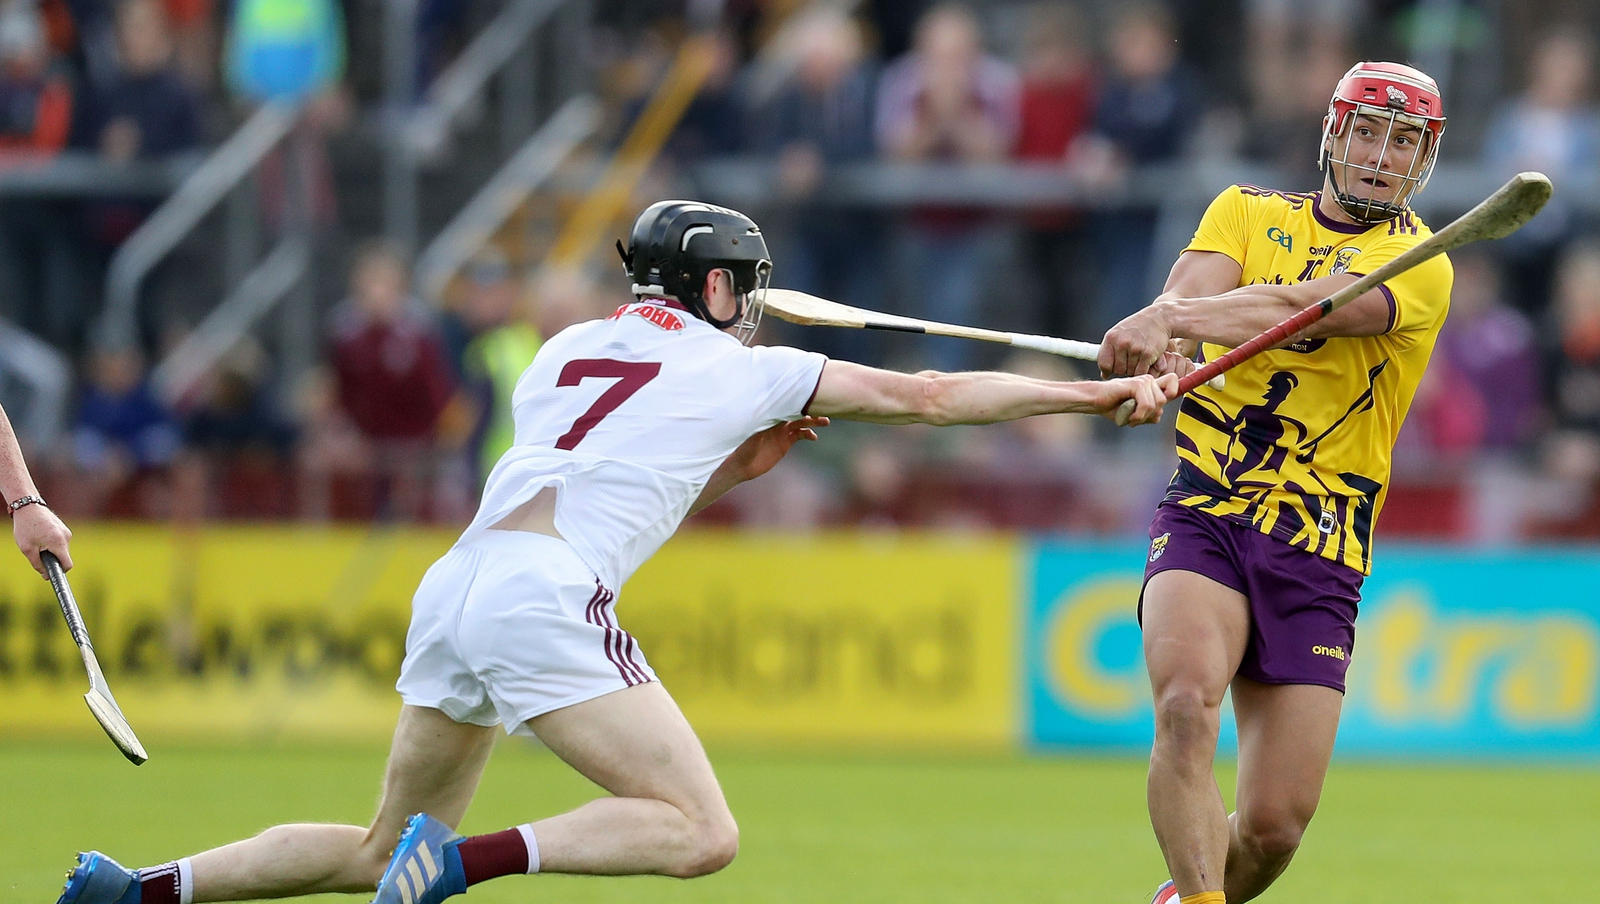 Image - Lee Chin was one player to struggle in the Salthill wind